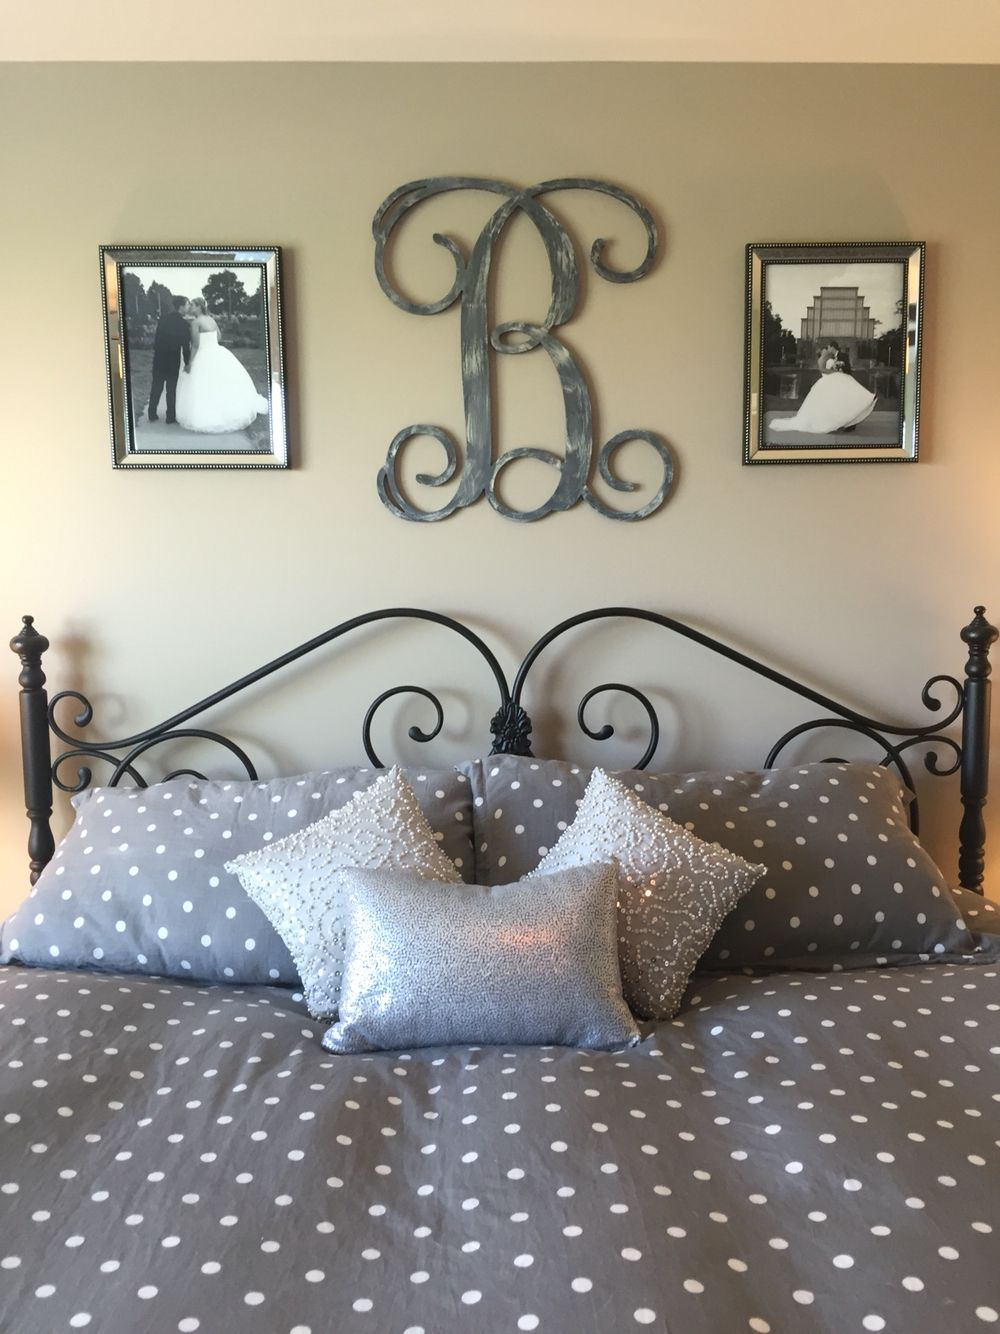 idea for above the bed in master bedroom monogram and picture idea for above the bed in master bedroom monogram and picture frames interior decor luxury style ideas home decor ideas